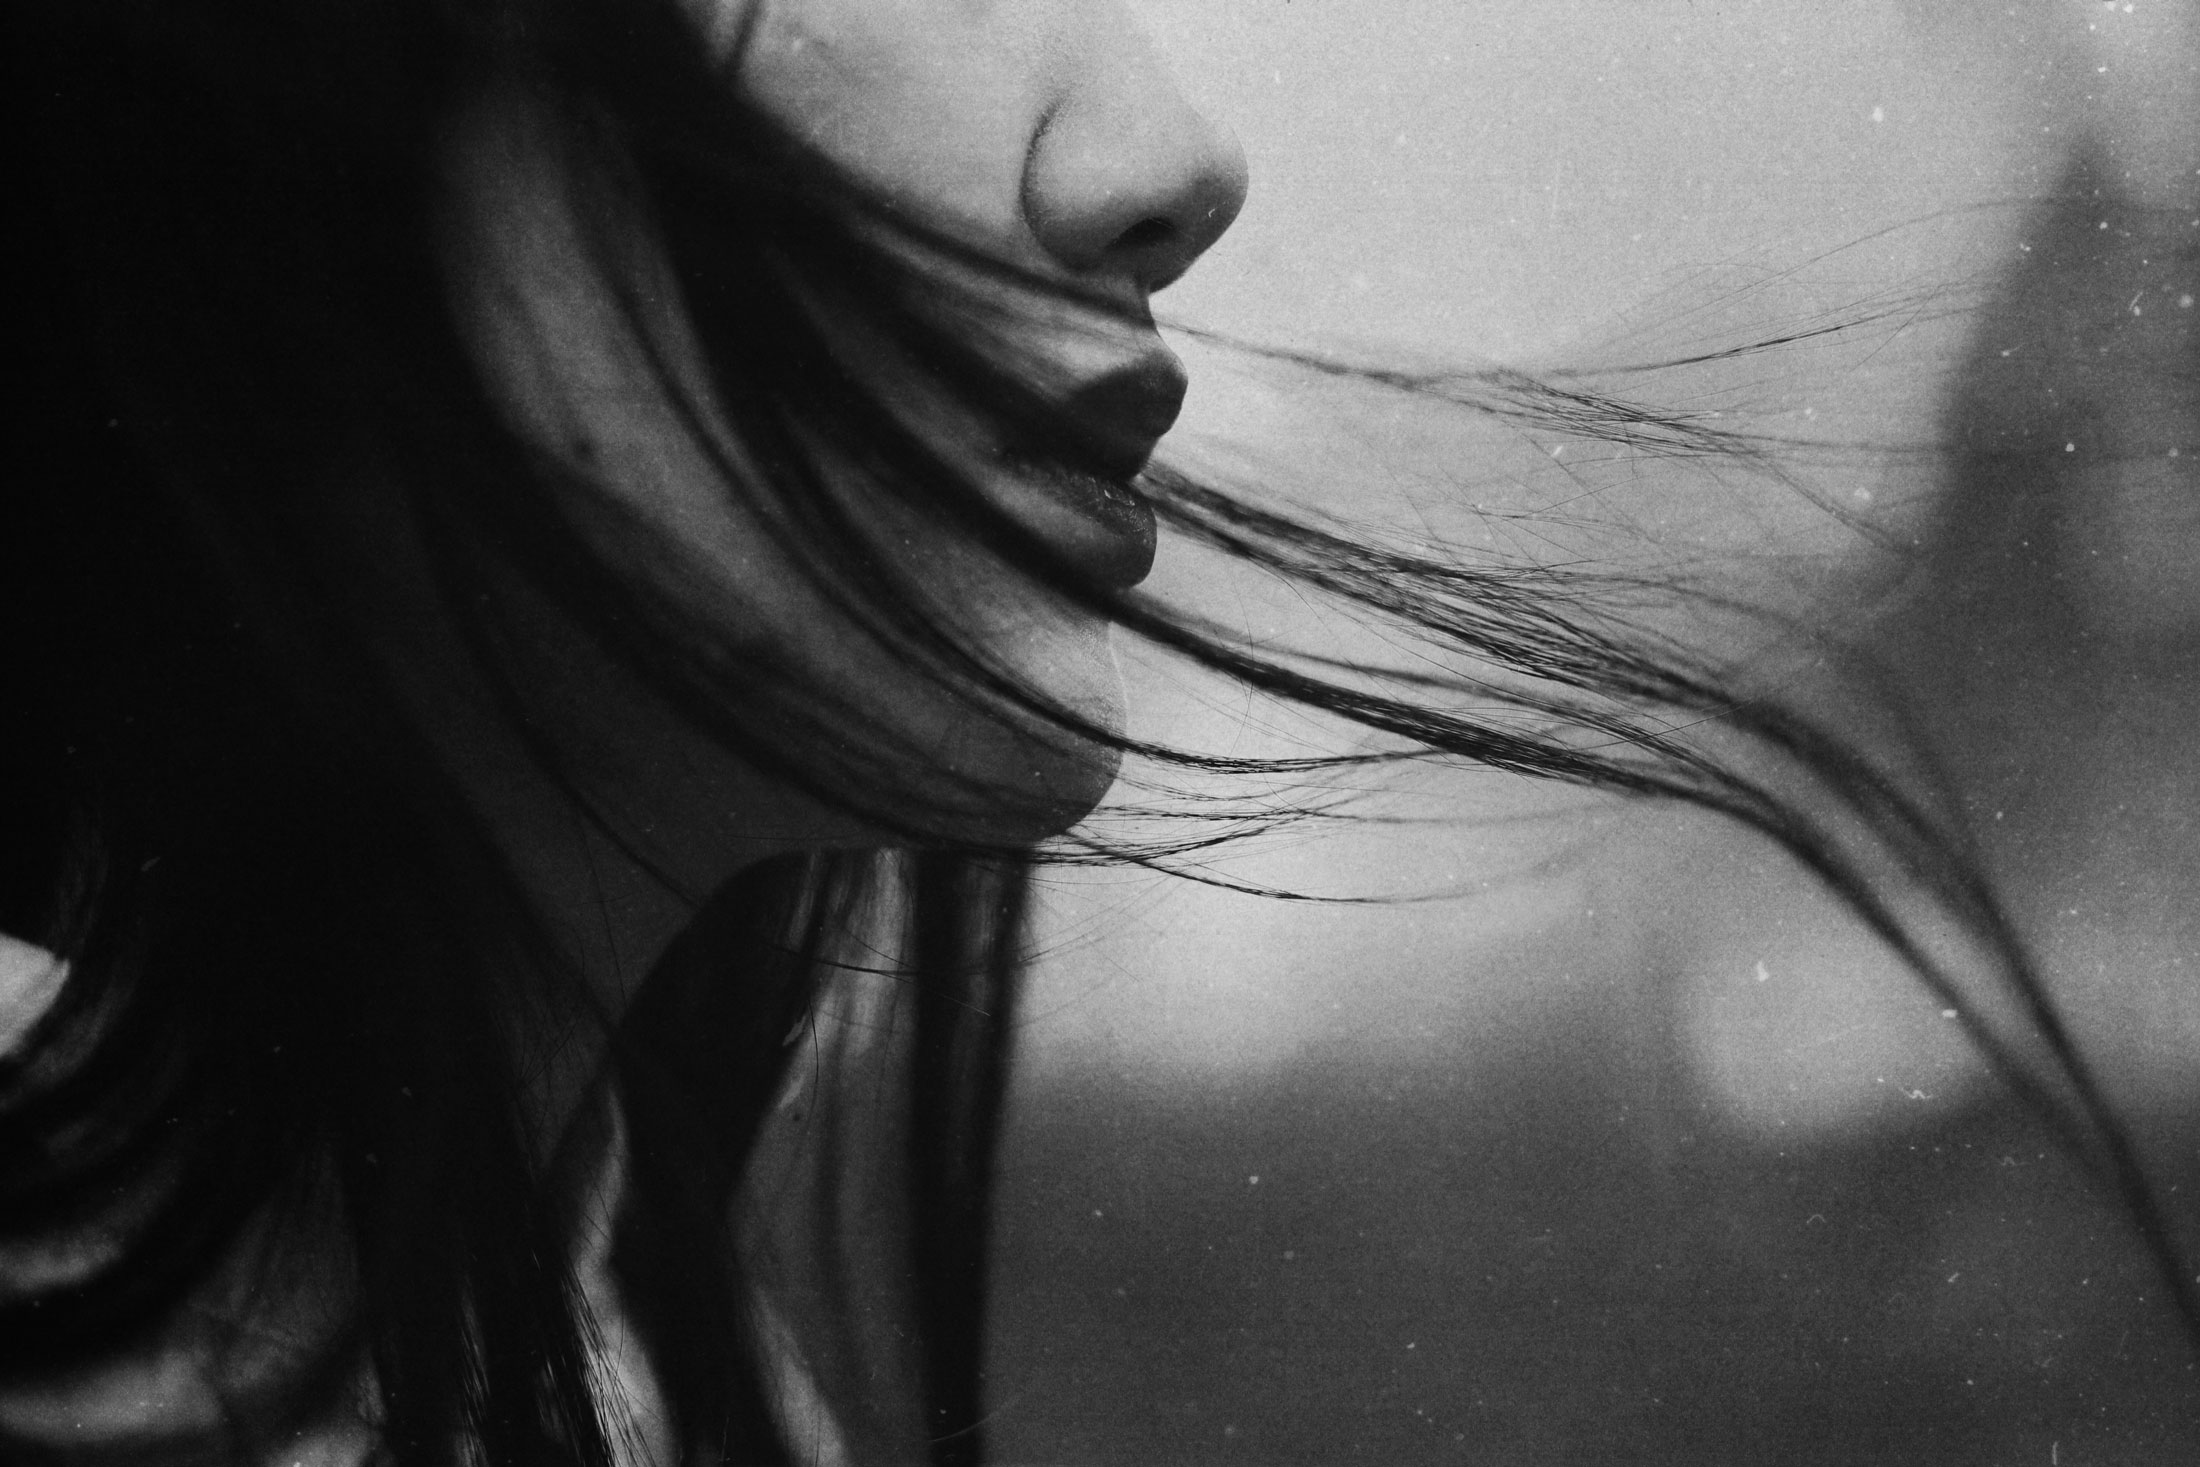 hair-in-the-wind-monochrome-uncanny-portrait